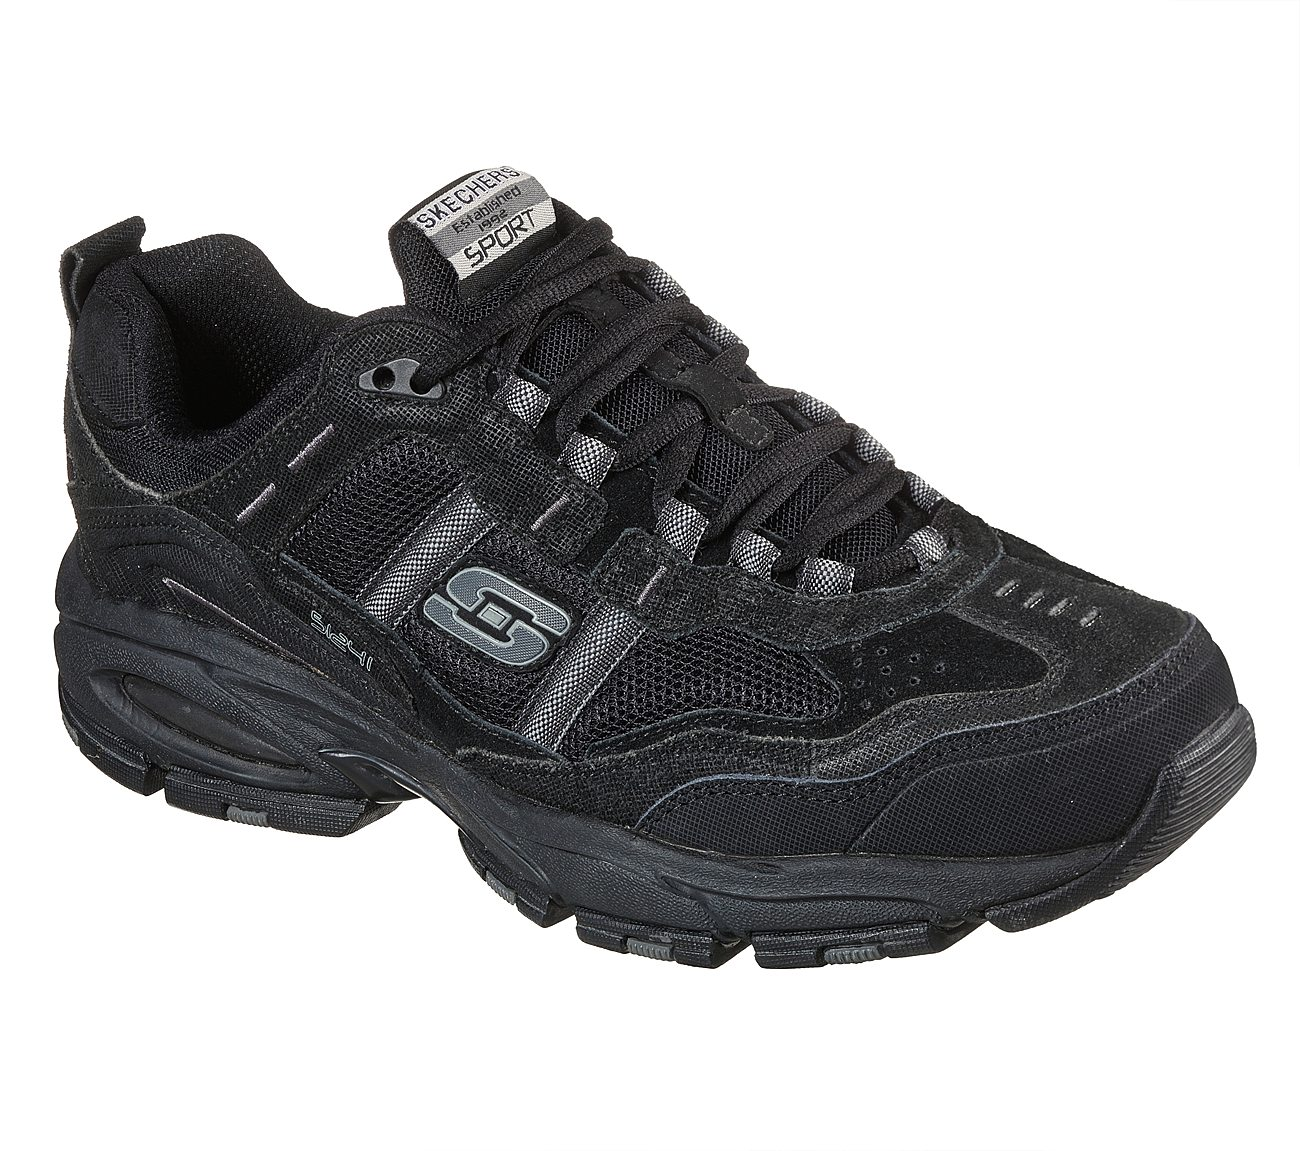 Vigor 2.0 - Trait SKECHERS Sport Shoes